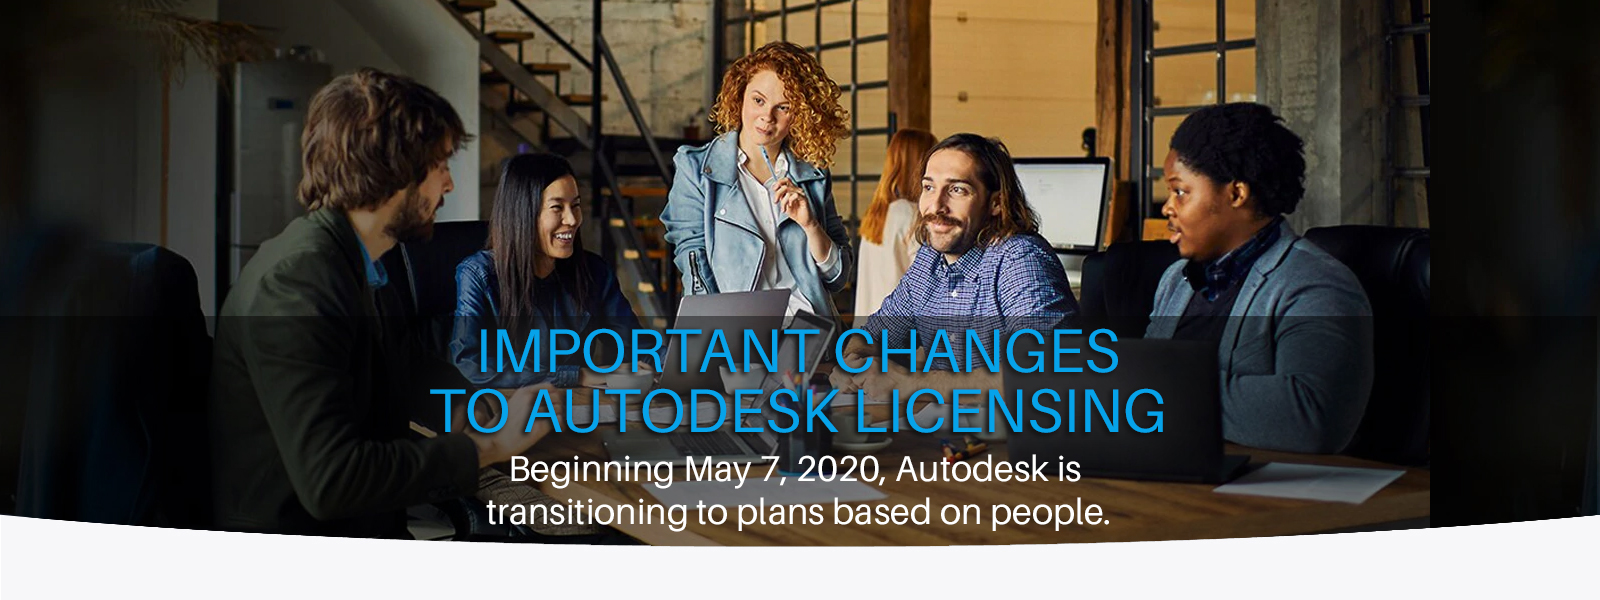 Important Changes to Autodesk